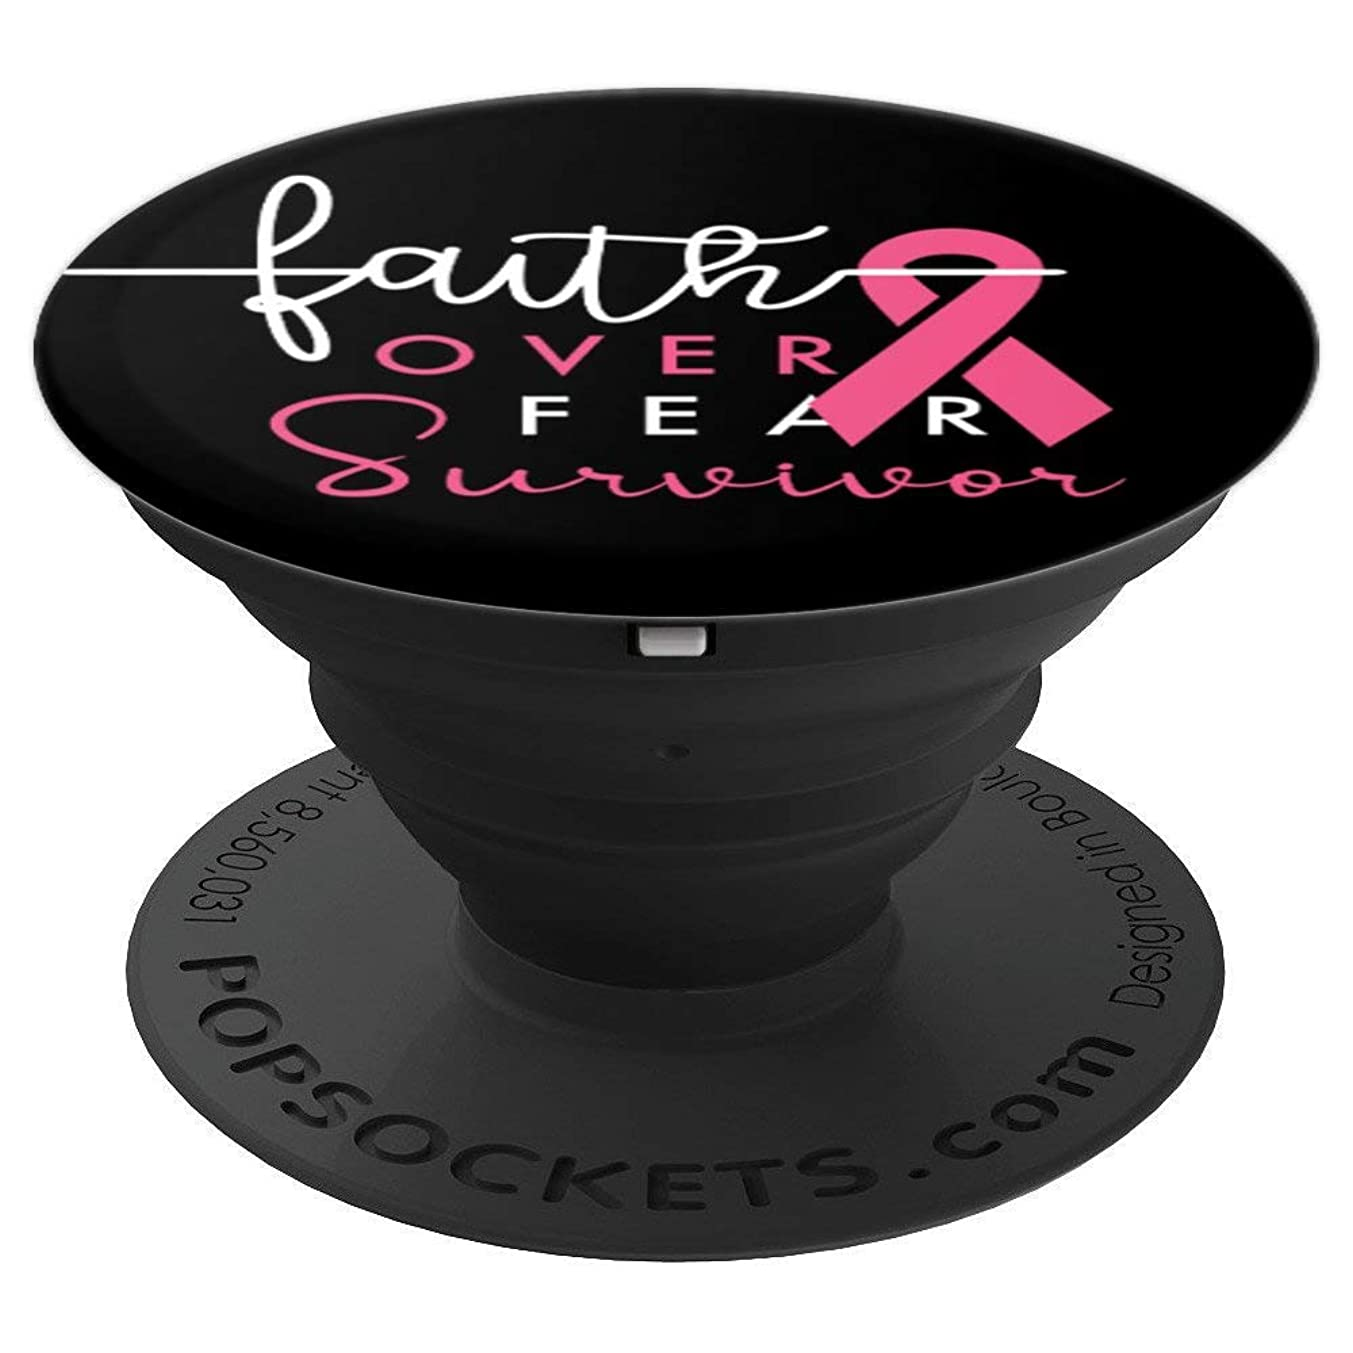 Faith Over Fear Survivor Breast Cancer Awareness Pink Ribbon - PopSockets Grip and Stand for Phones and Tablets